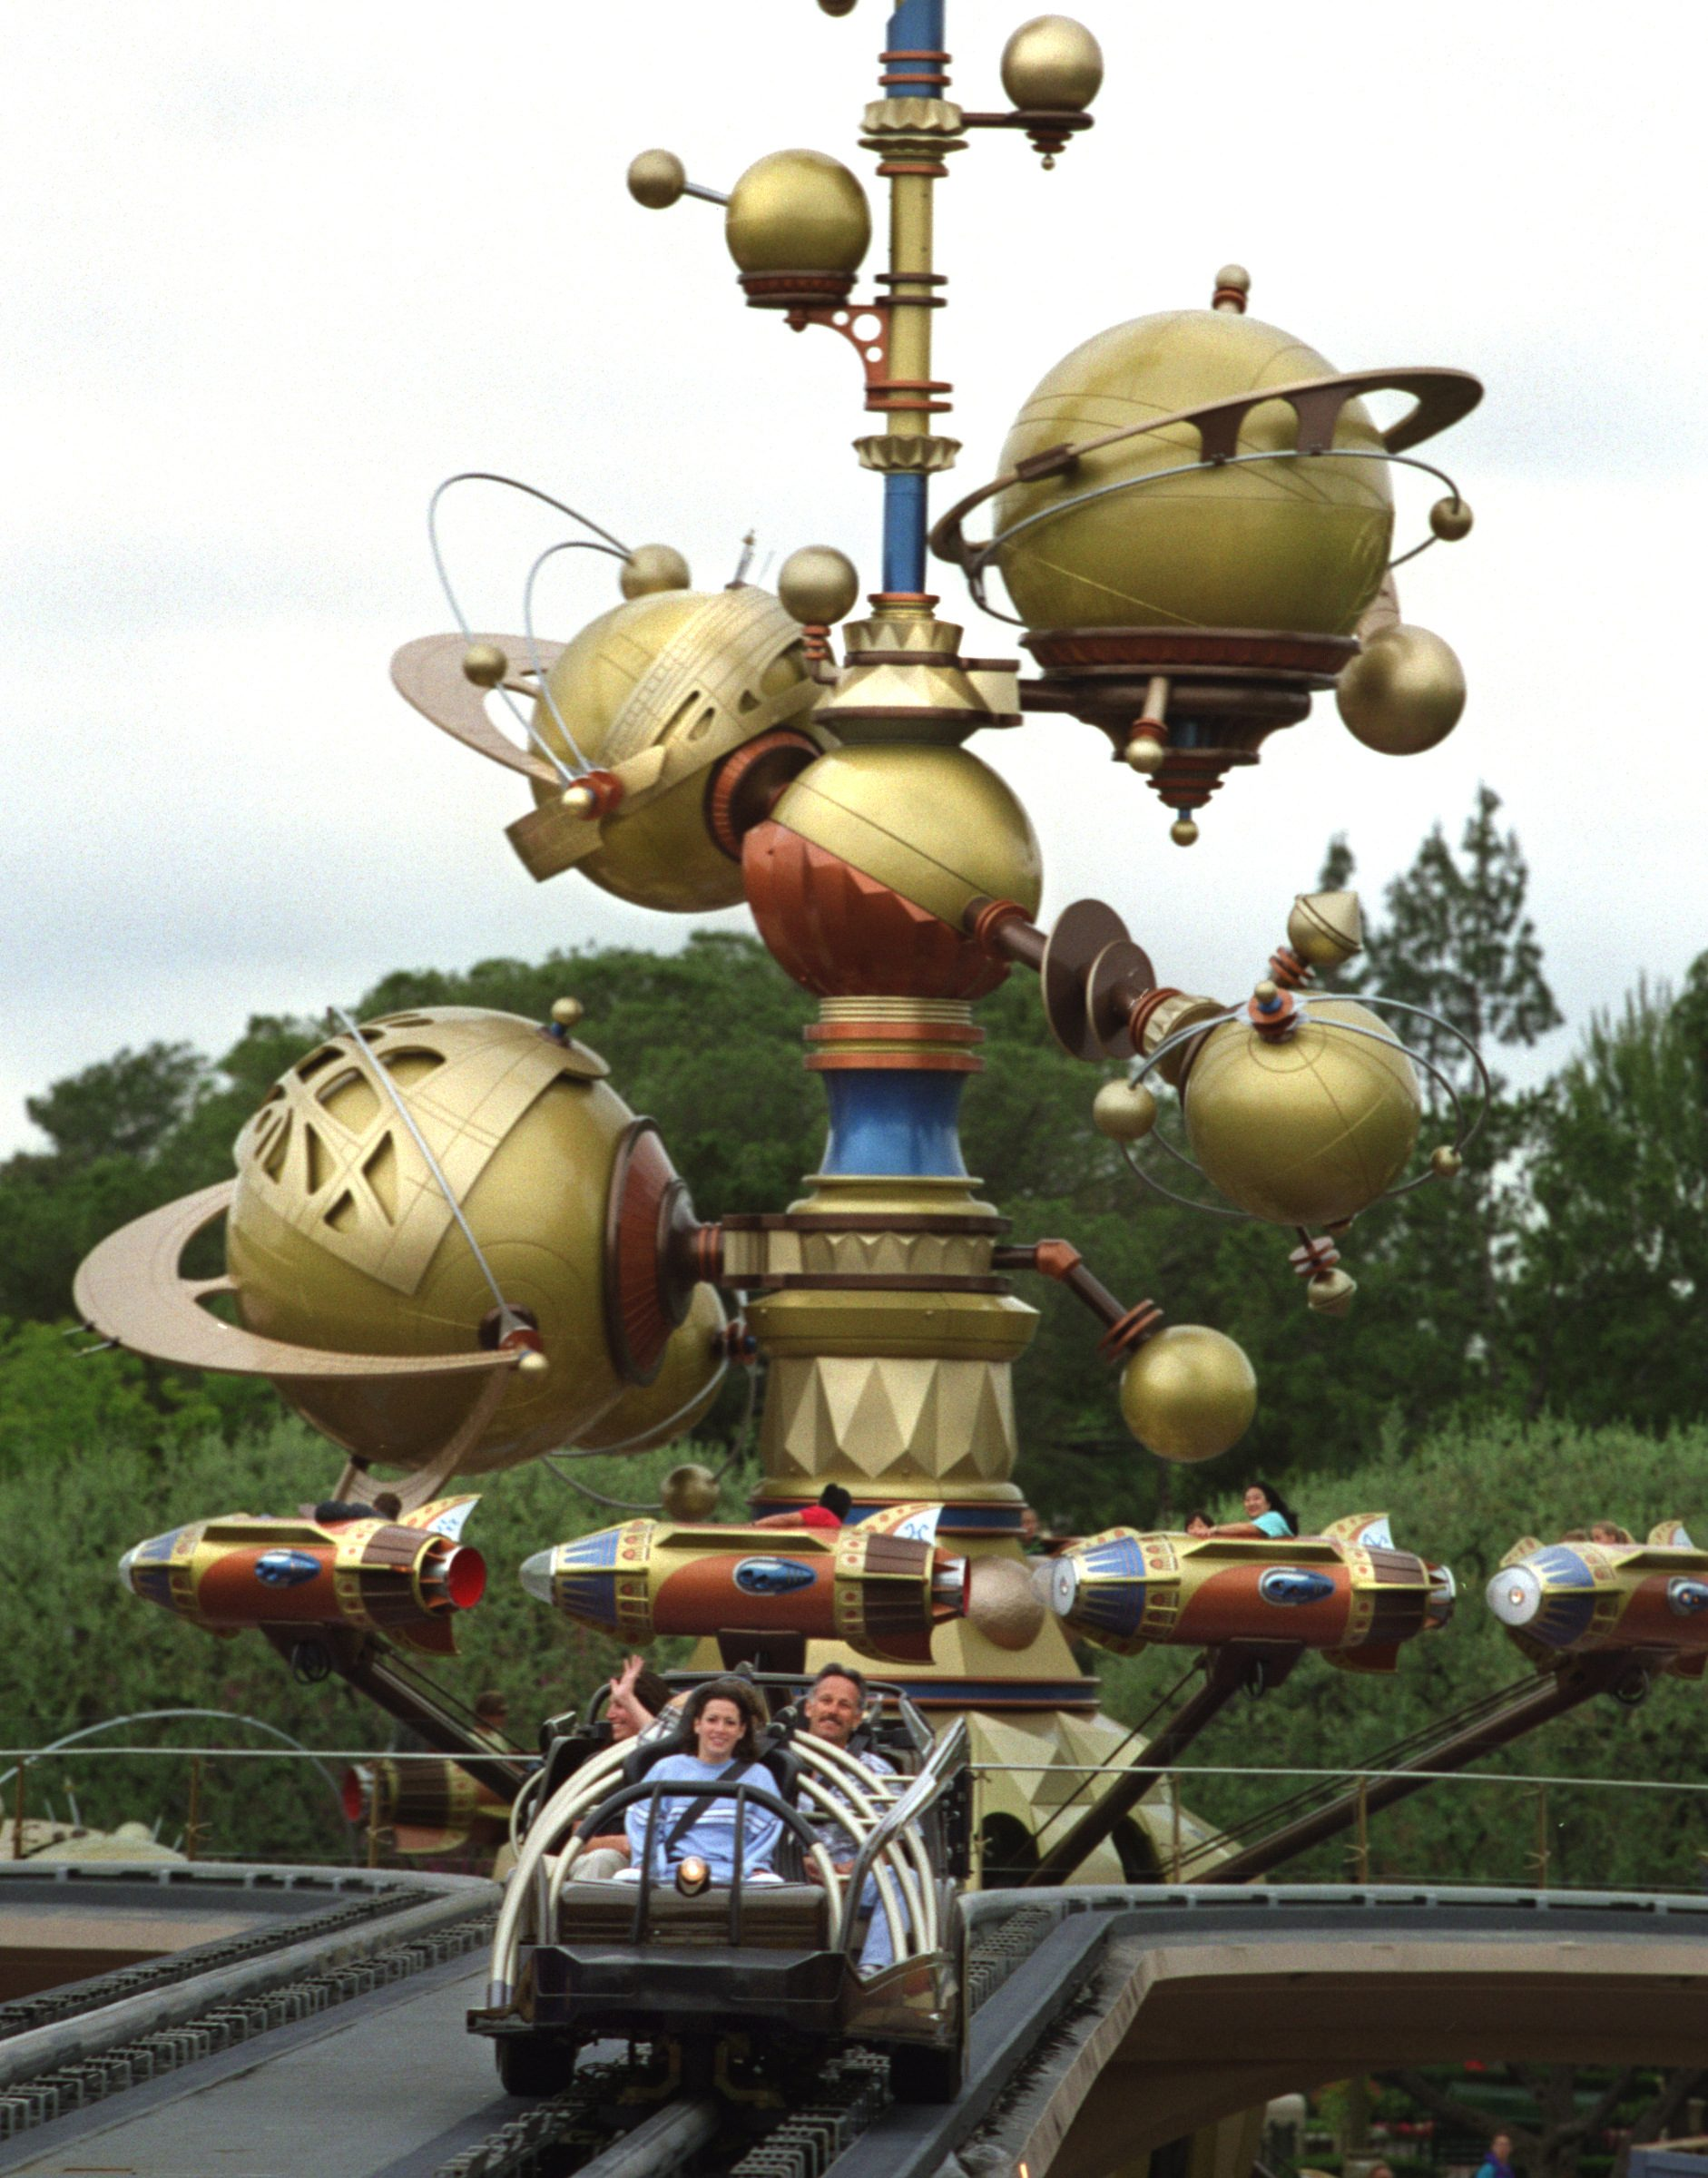 CA.tomorrowland.1.0510.AS––ANAHEIM––Disneyland –furnished models ride Rocket Rods, front, and the As